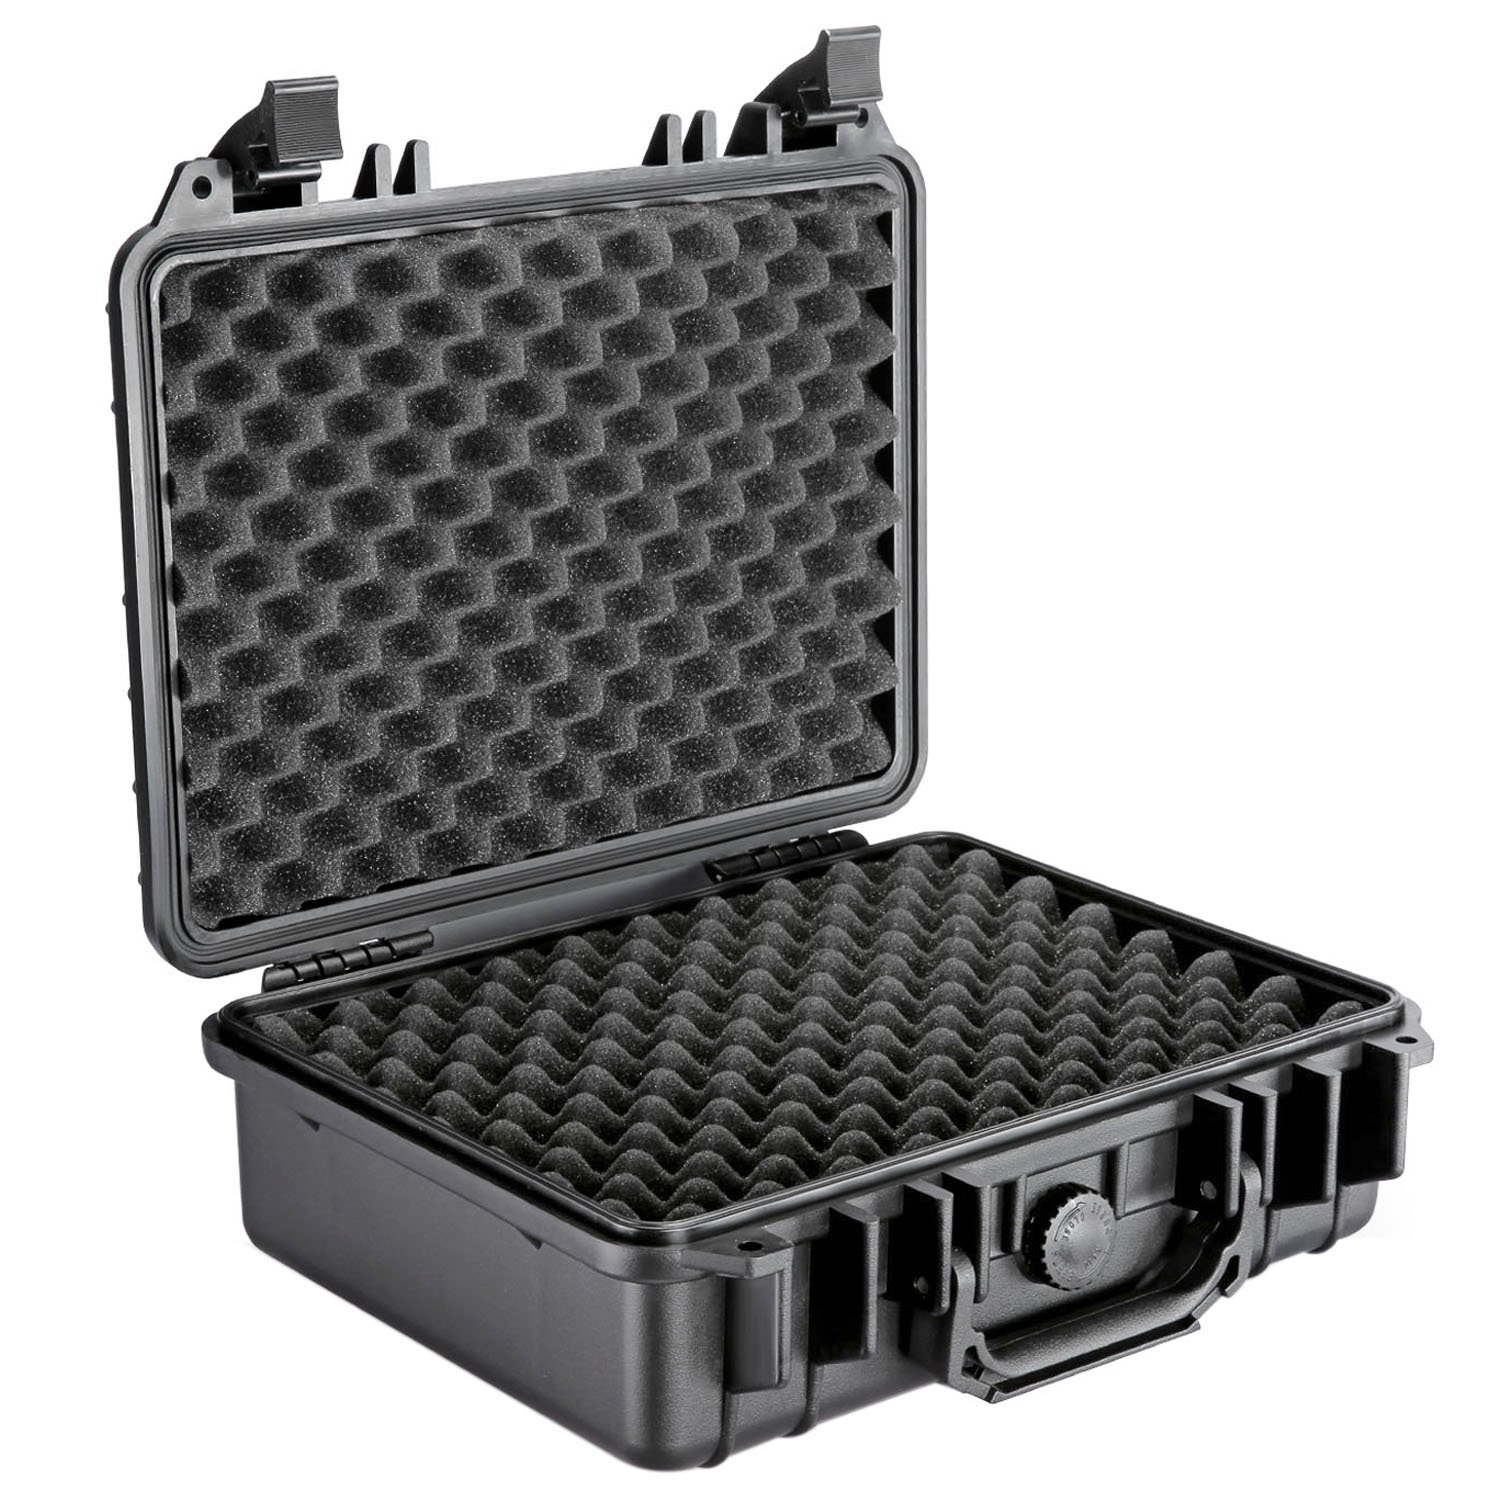 Neewer 13x10x6/33x25x15cm Waterproof Carrying Case with Cubed Foam for Cameras, Flashes, LED Lights, Lenses and Other Accessories (Black)